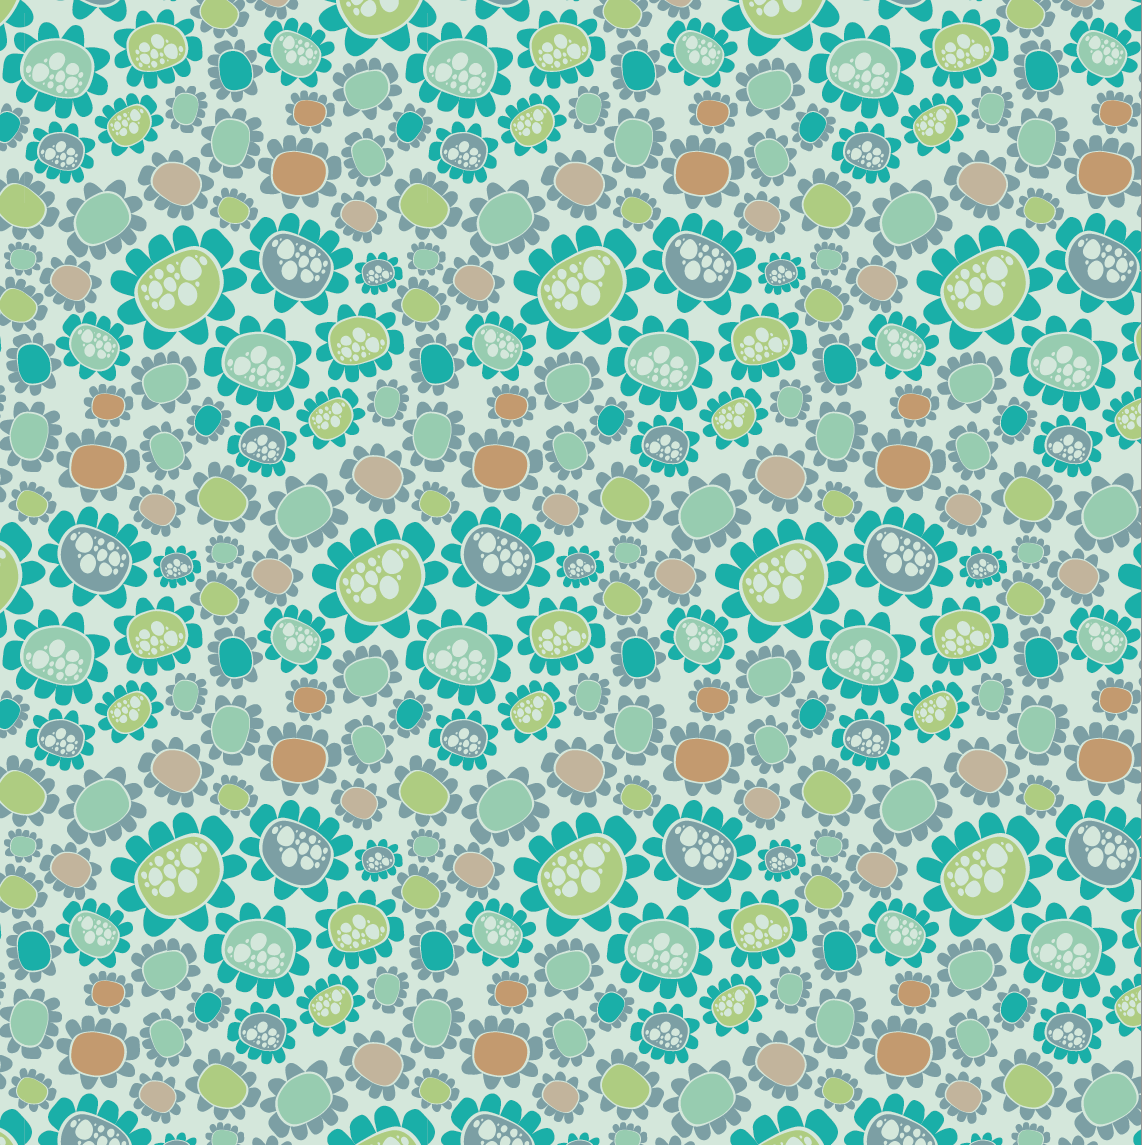 design surface pattern teal flowers nonna design illustration